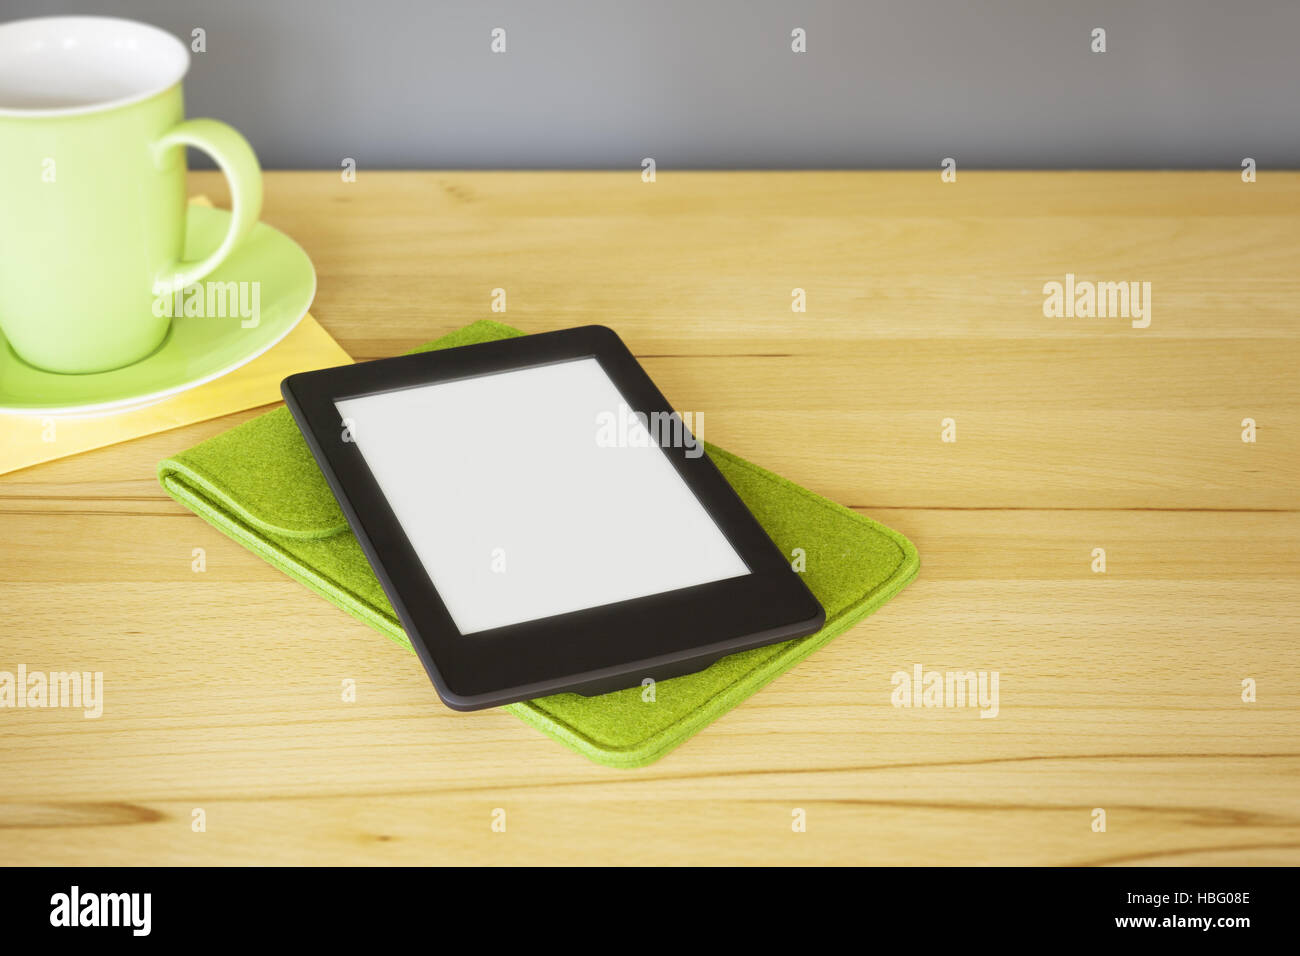 ebook reader on a wooden table - Stock Image